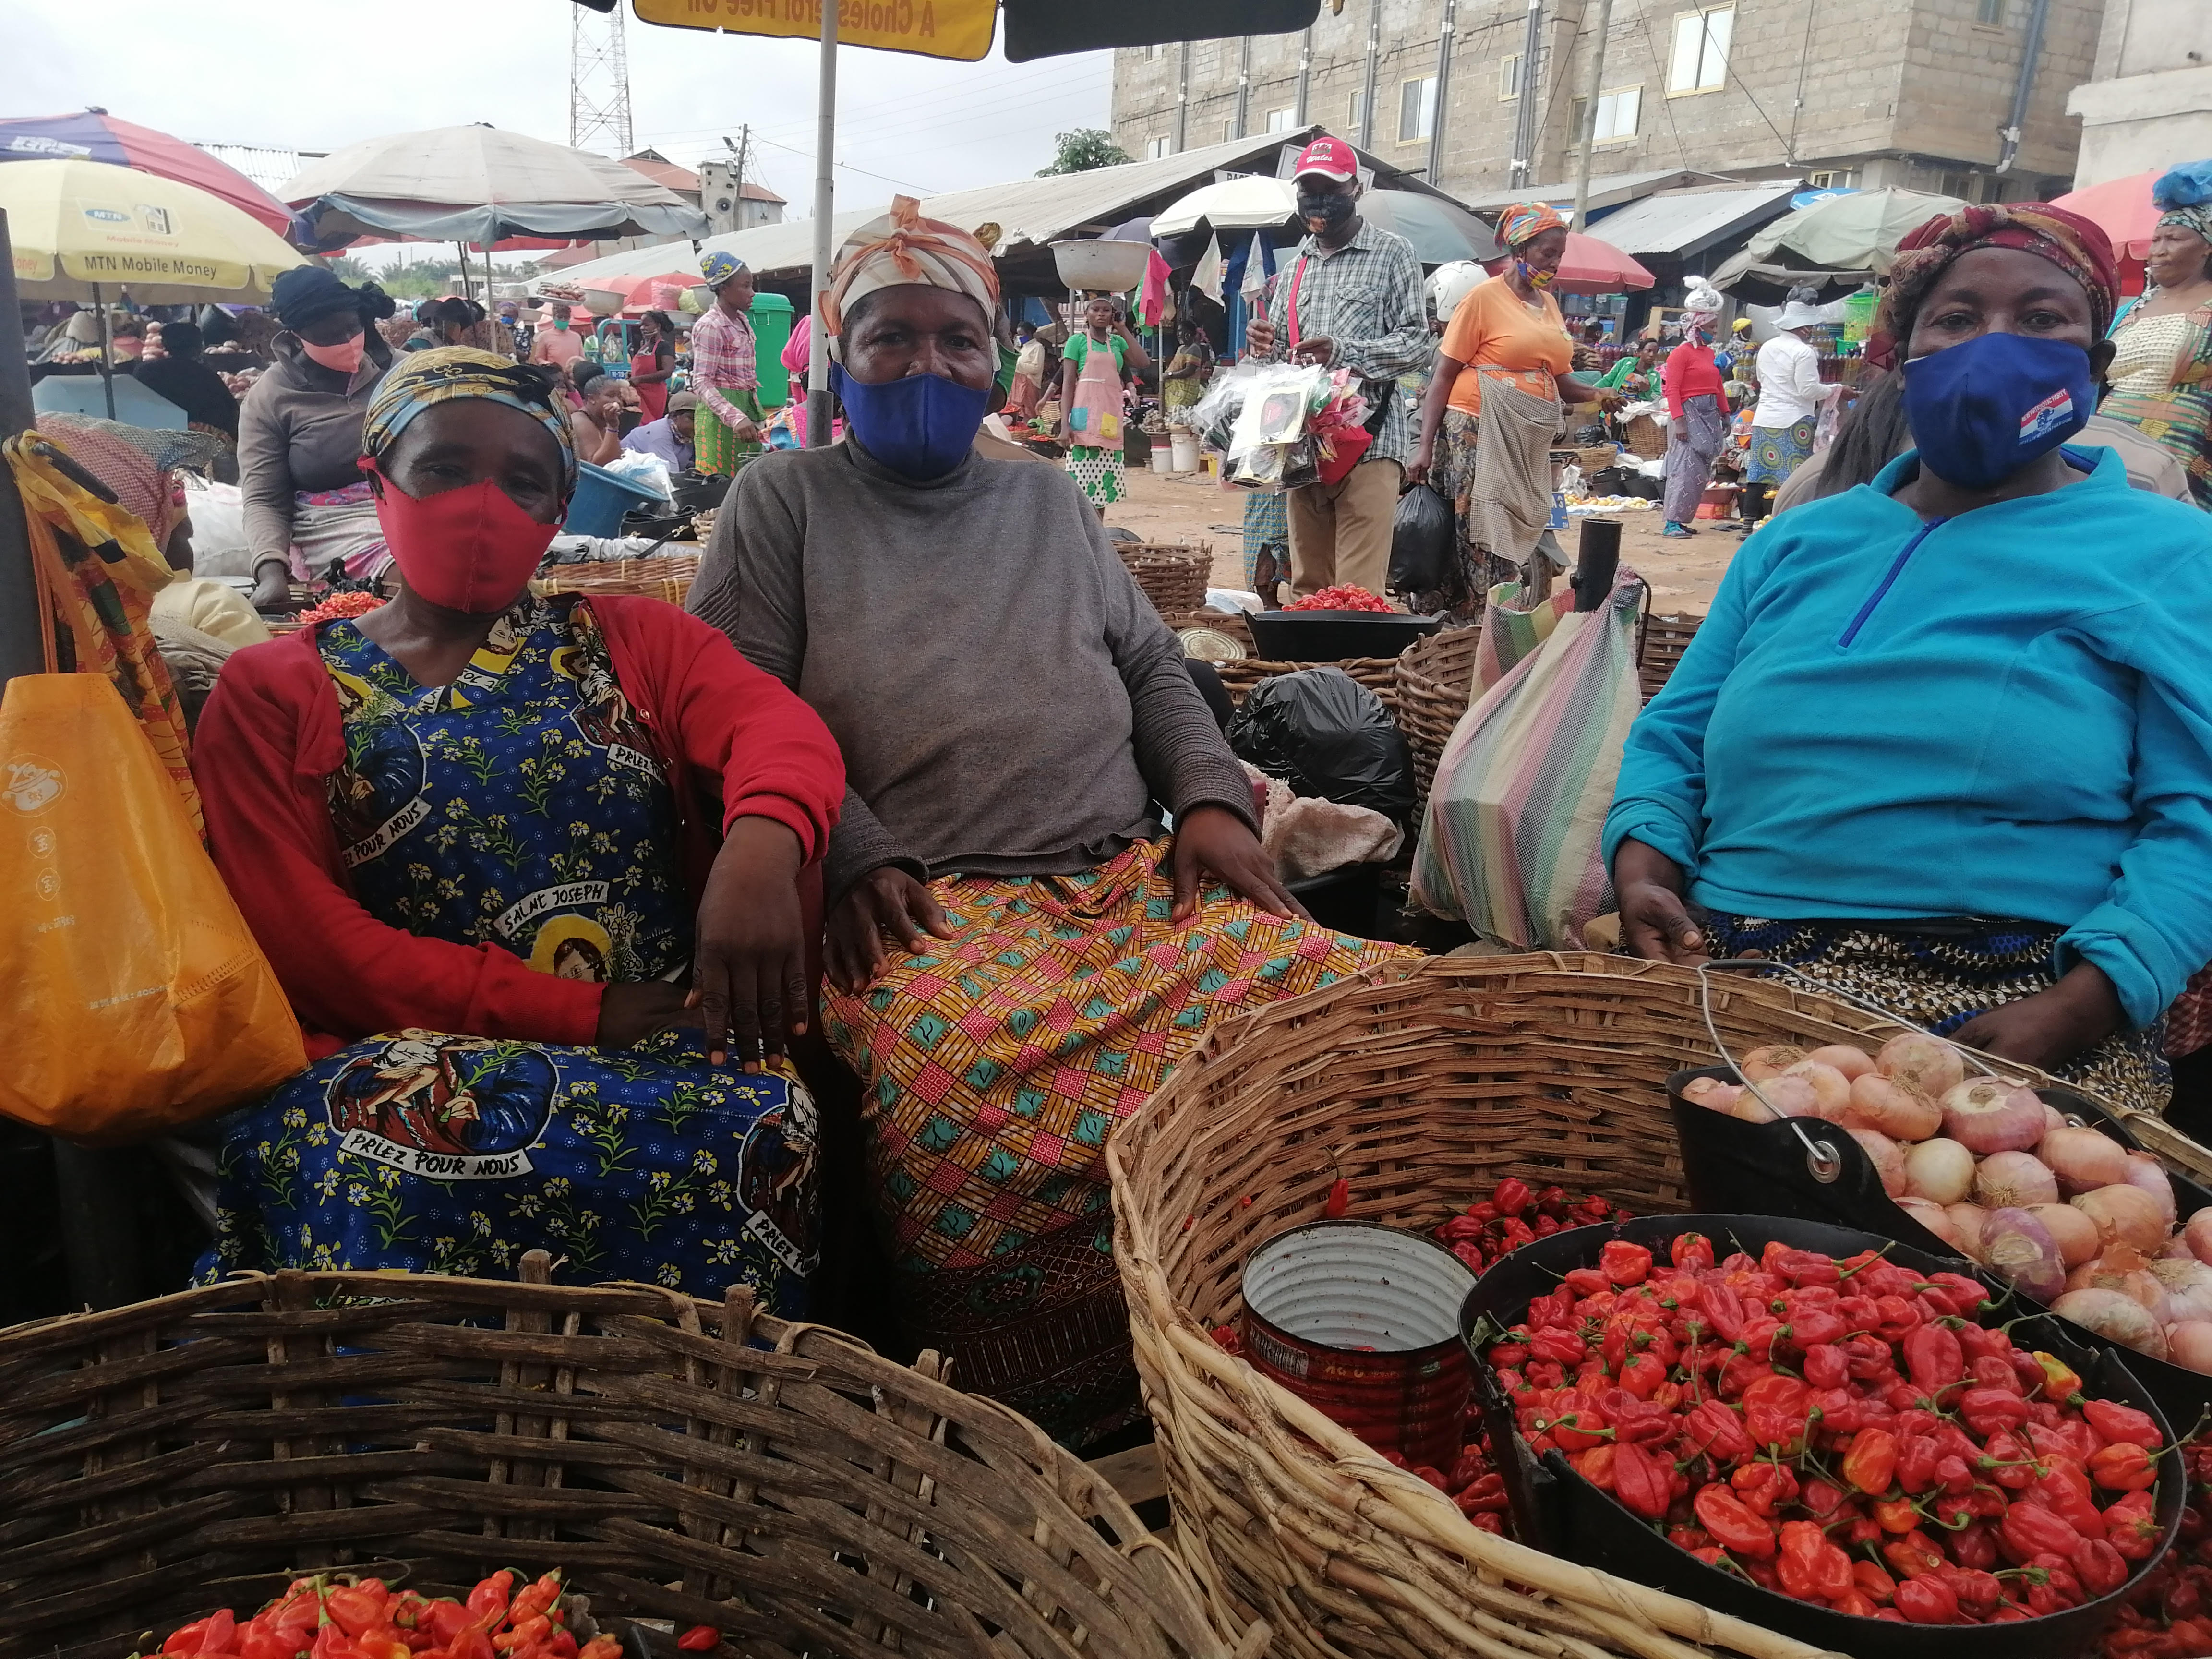 """In Ghana, so-called """"market queens"""" used their influence in largely managing large town markets to devise solutions with the government to keep markets open during the COVID-19 pandemic by rotating vendors to reduce the number working at any one time and increasing the physical space for the markets."""